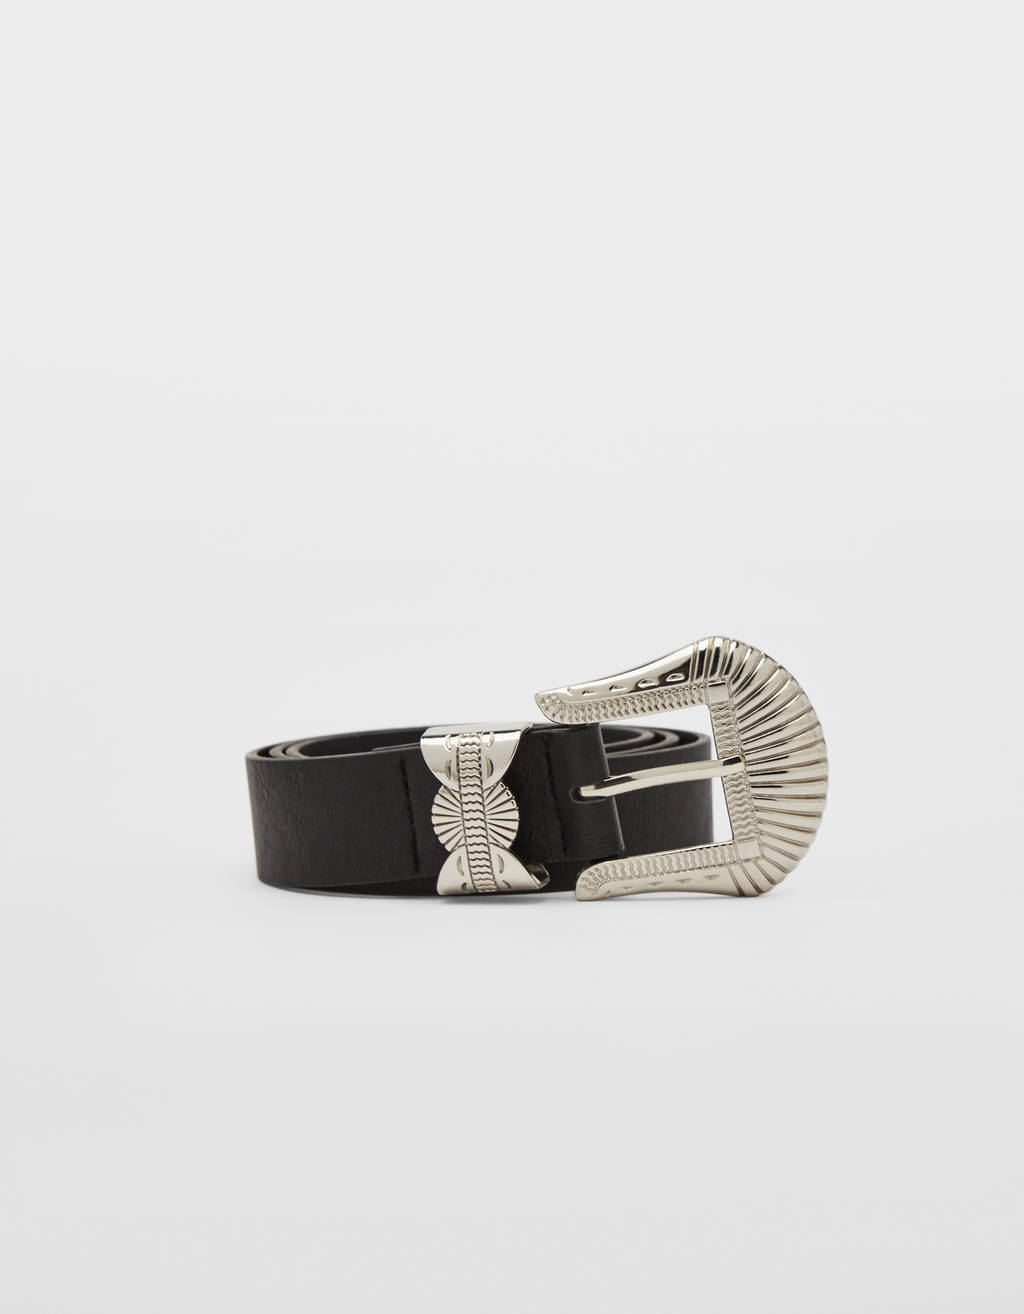 Cowboy belt with metal buckle